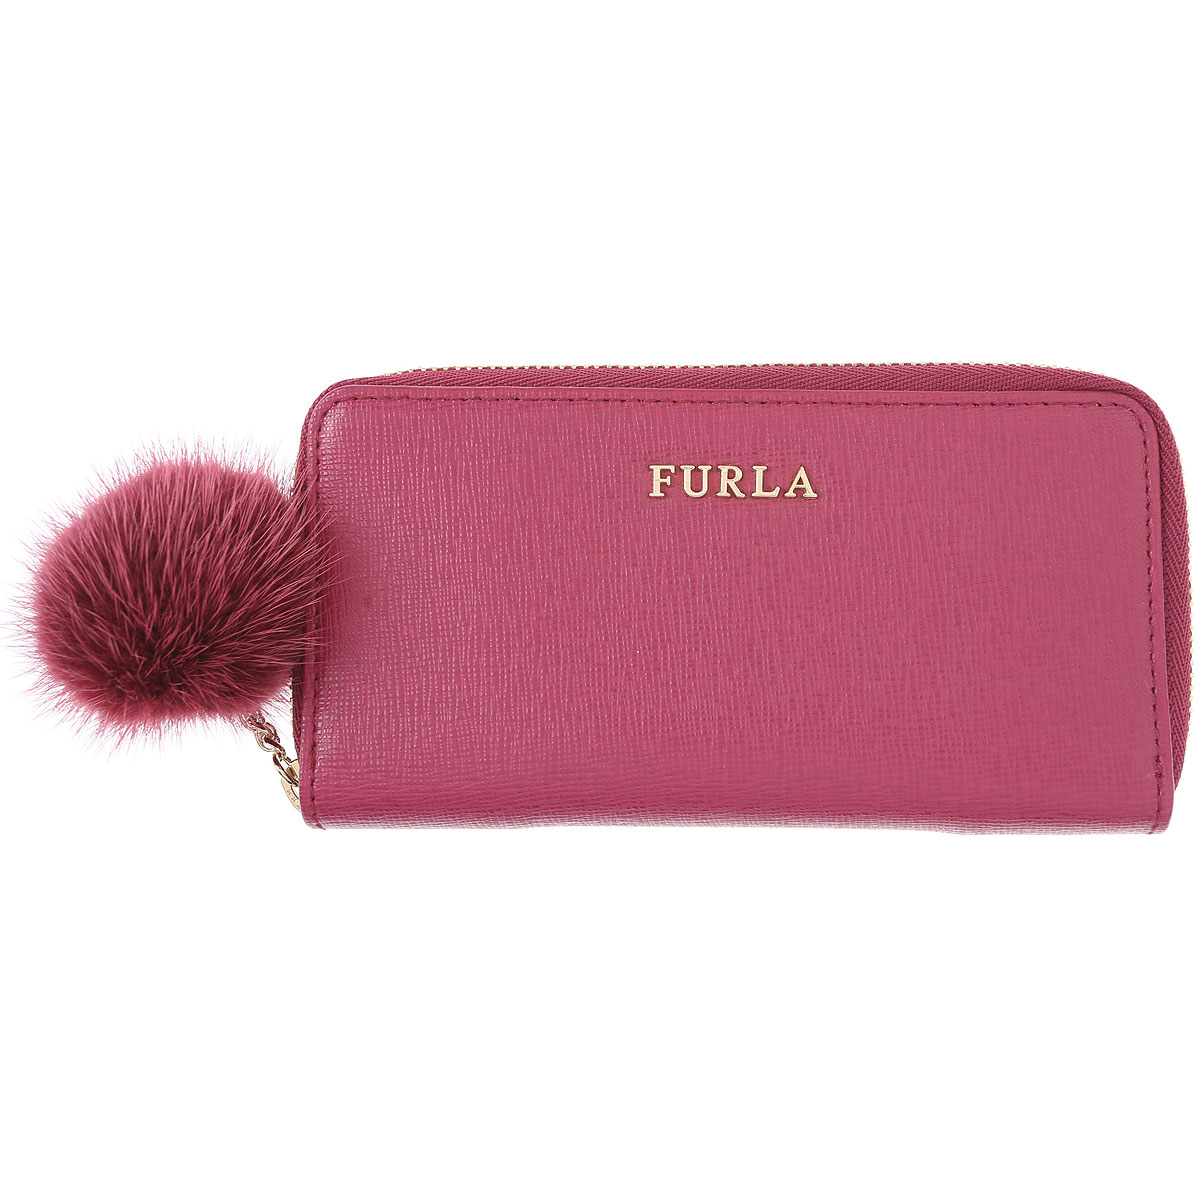 Furla Key Chain for Women, Key Ring On Sale in Outlet, Raspberry, Leather, 2019